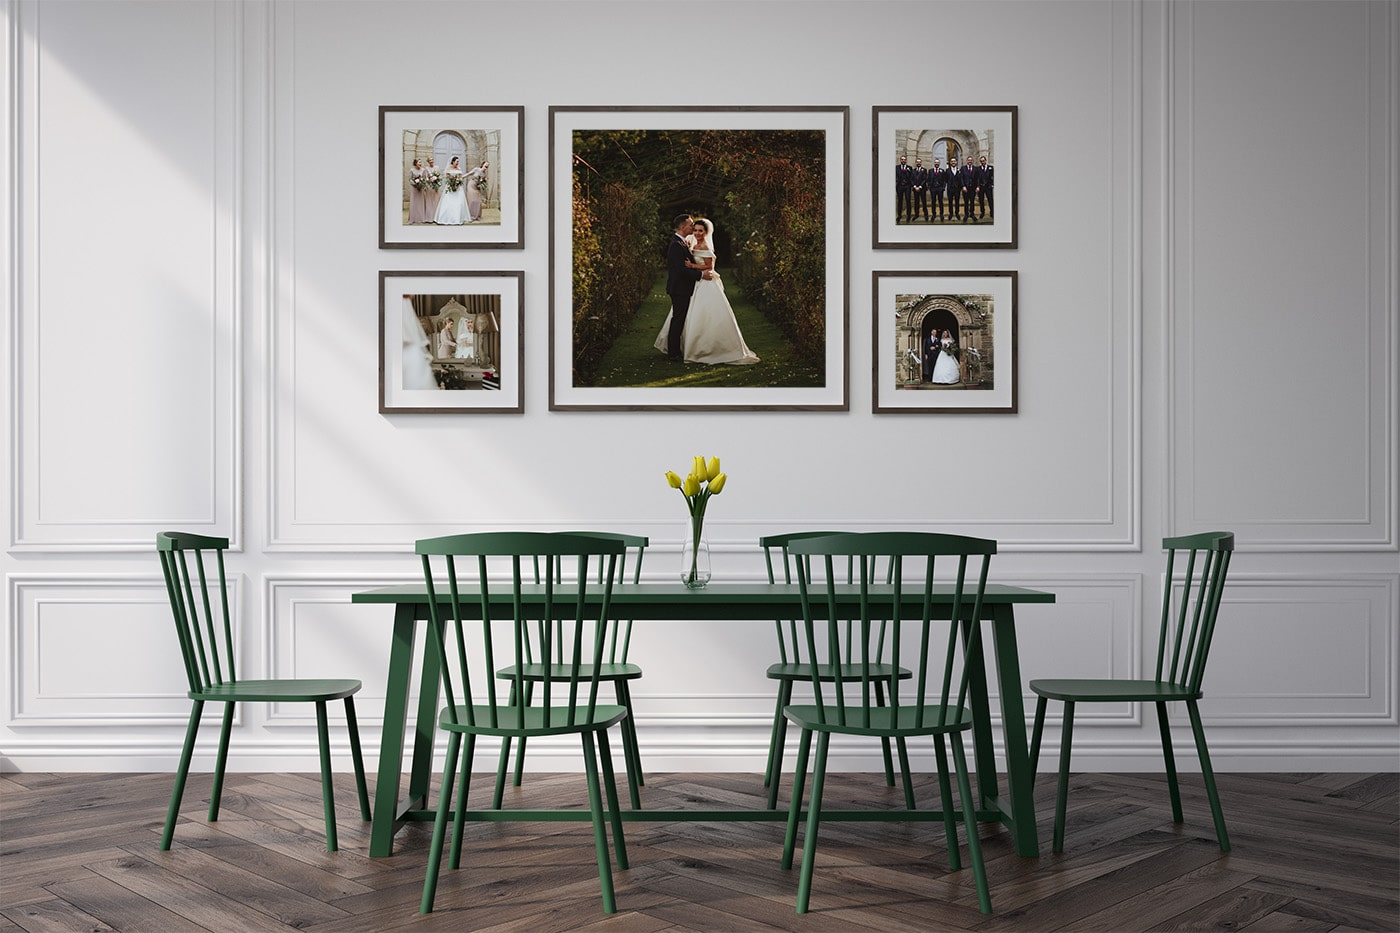 Printed and framed wedding photographs